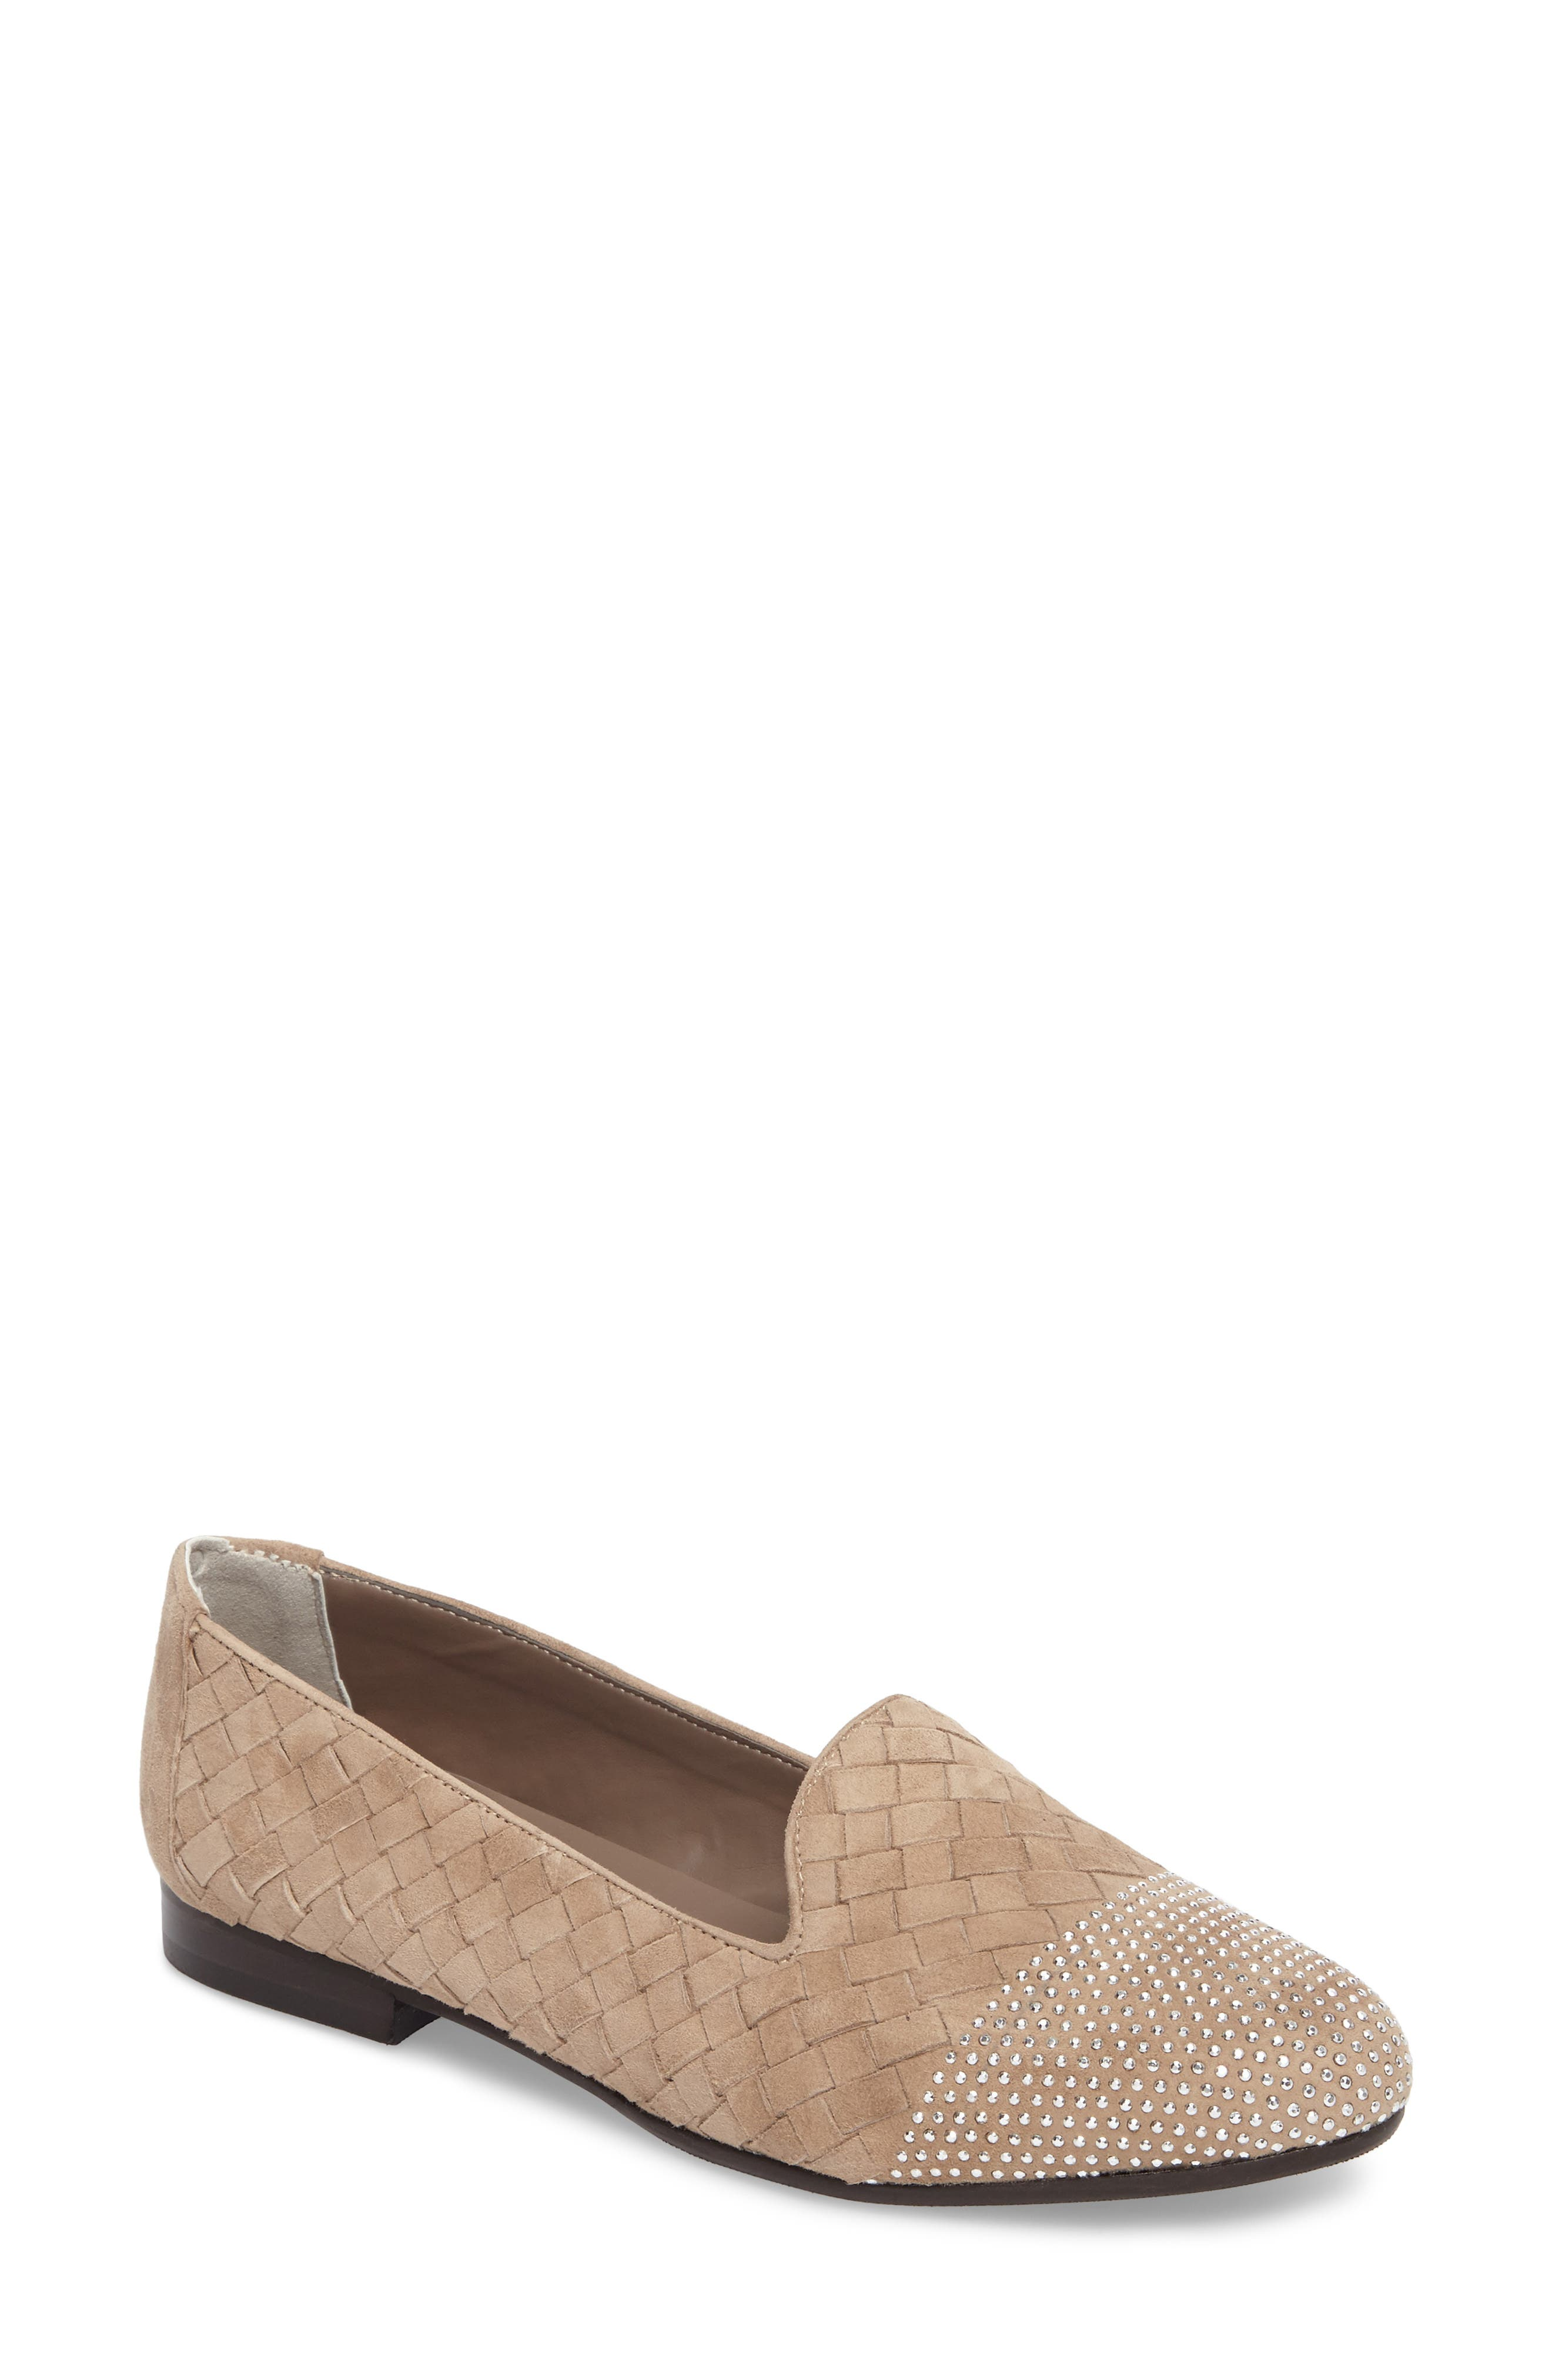 Nicia Flat,                             Main thumbnail 1, color,                             Light Taupe Suede